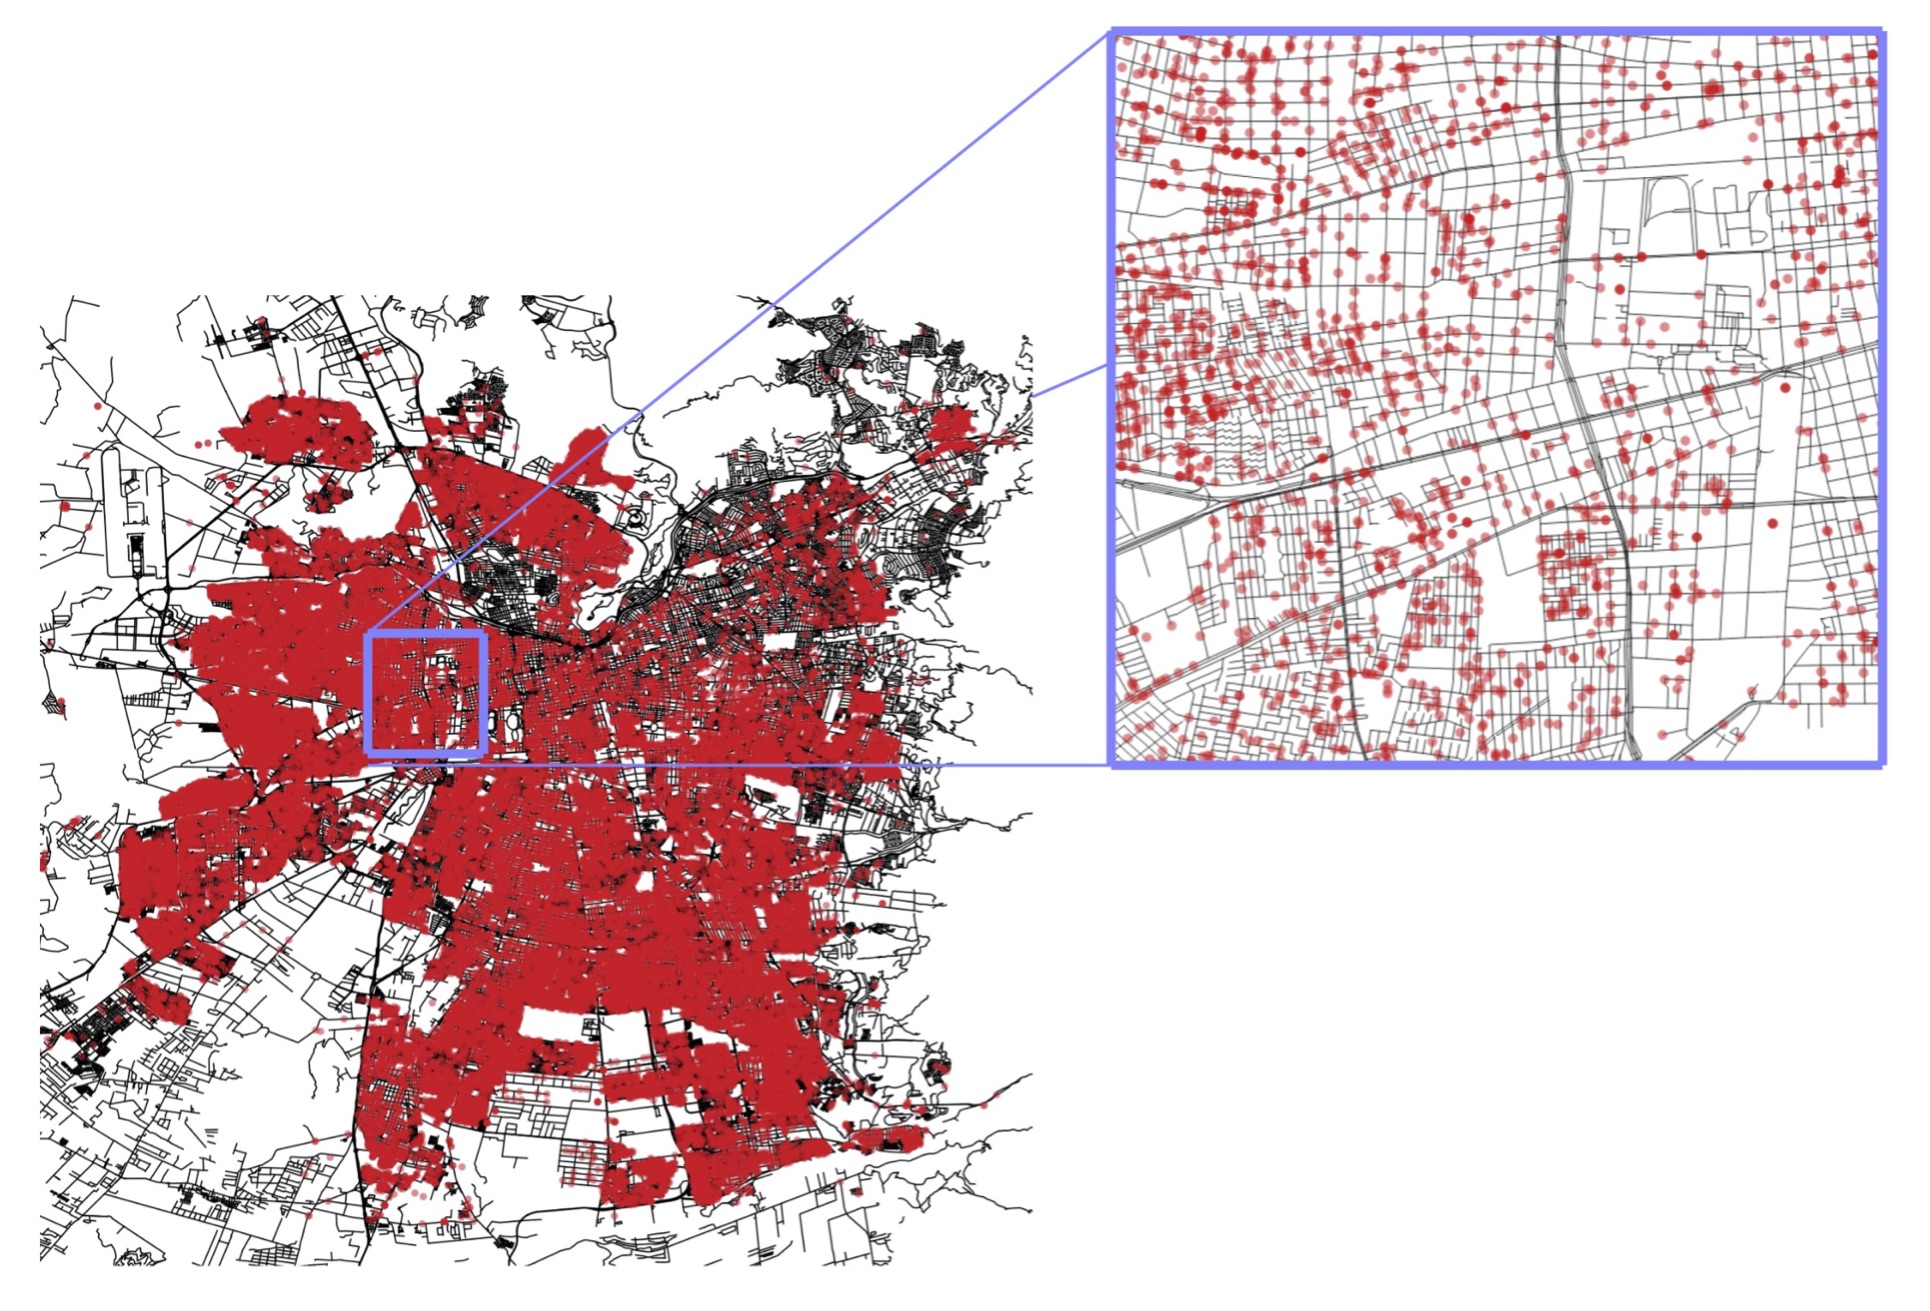 Locations of over 50,000 student protesters in Santiago, Chile during the 2011 student movement